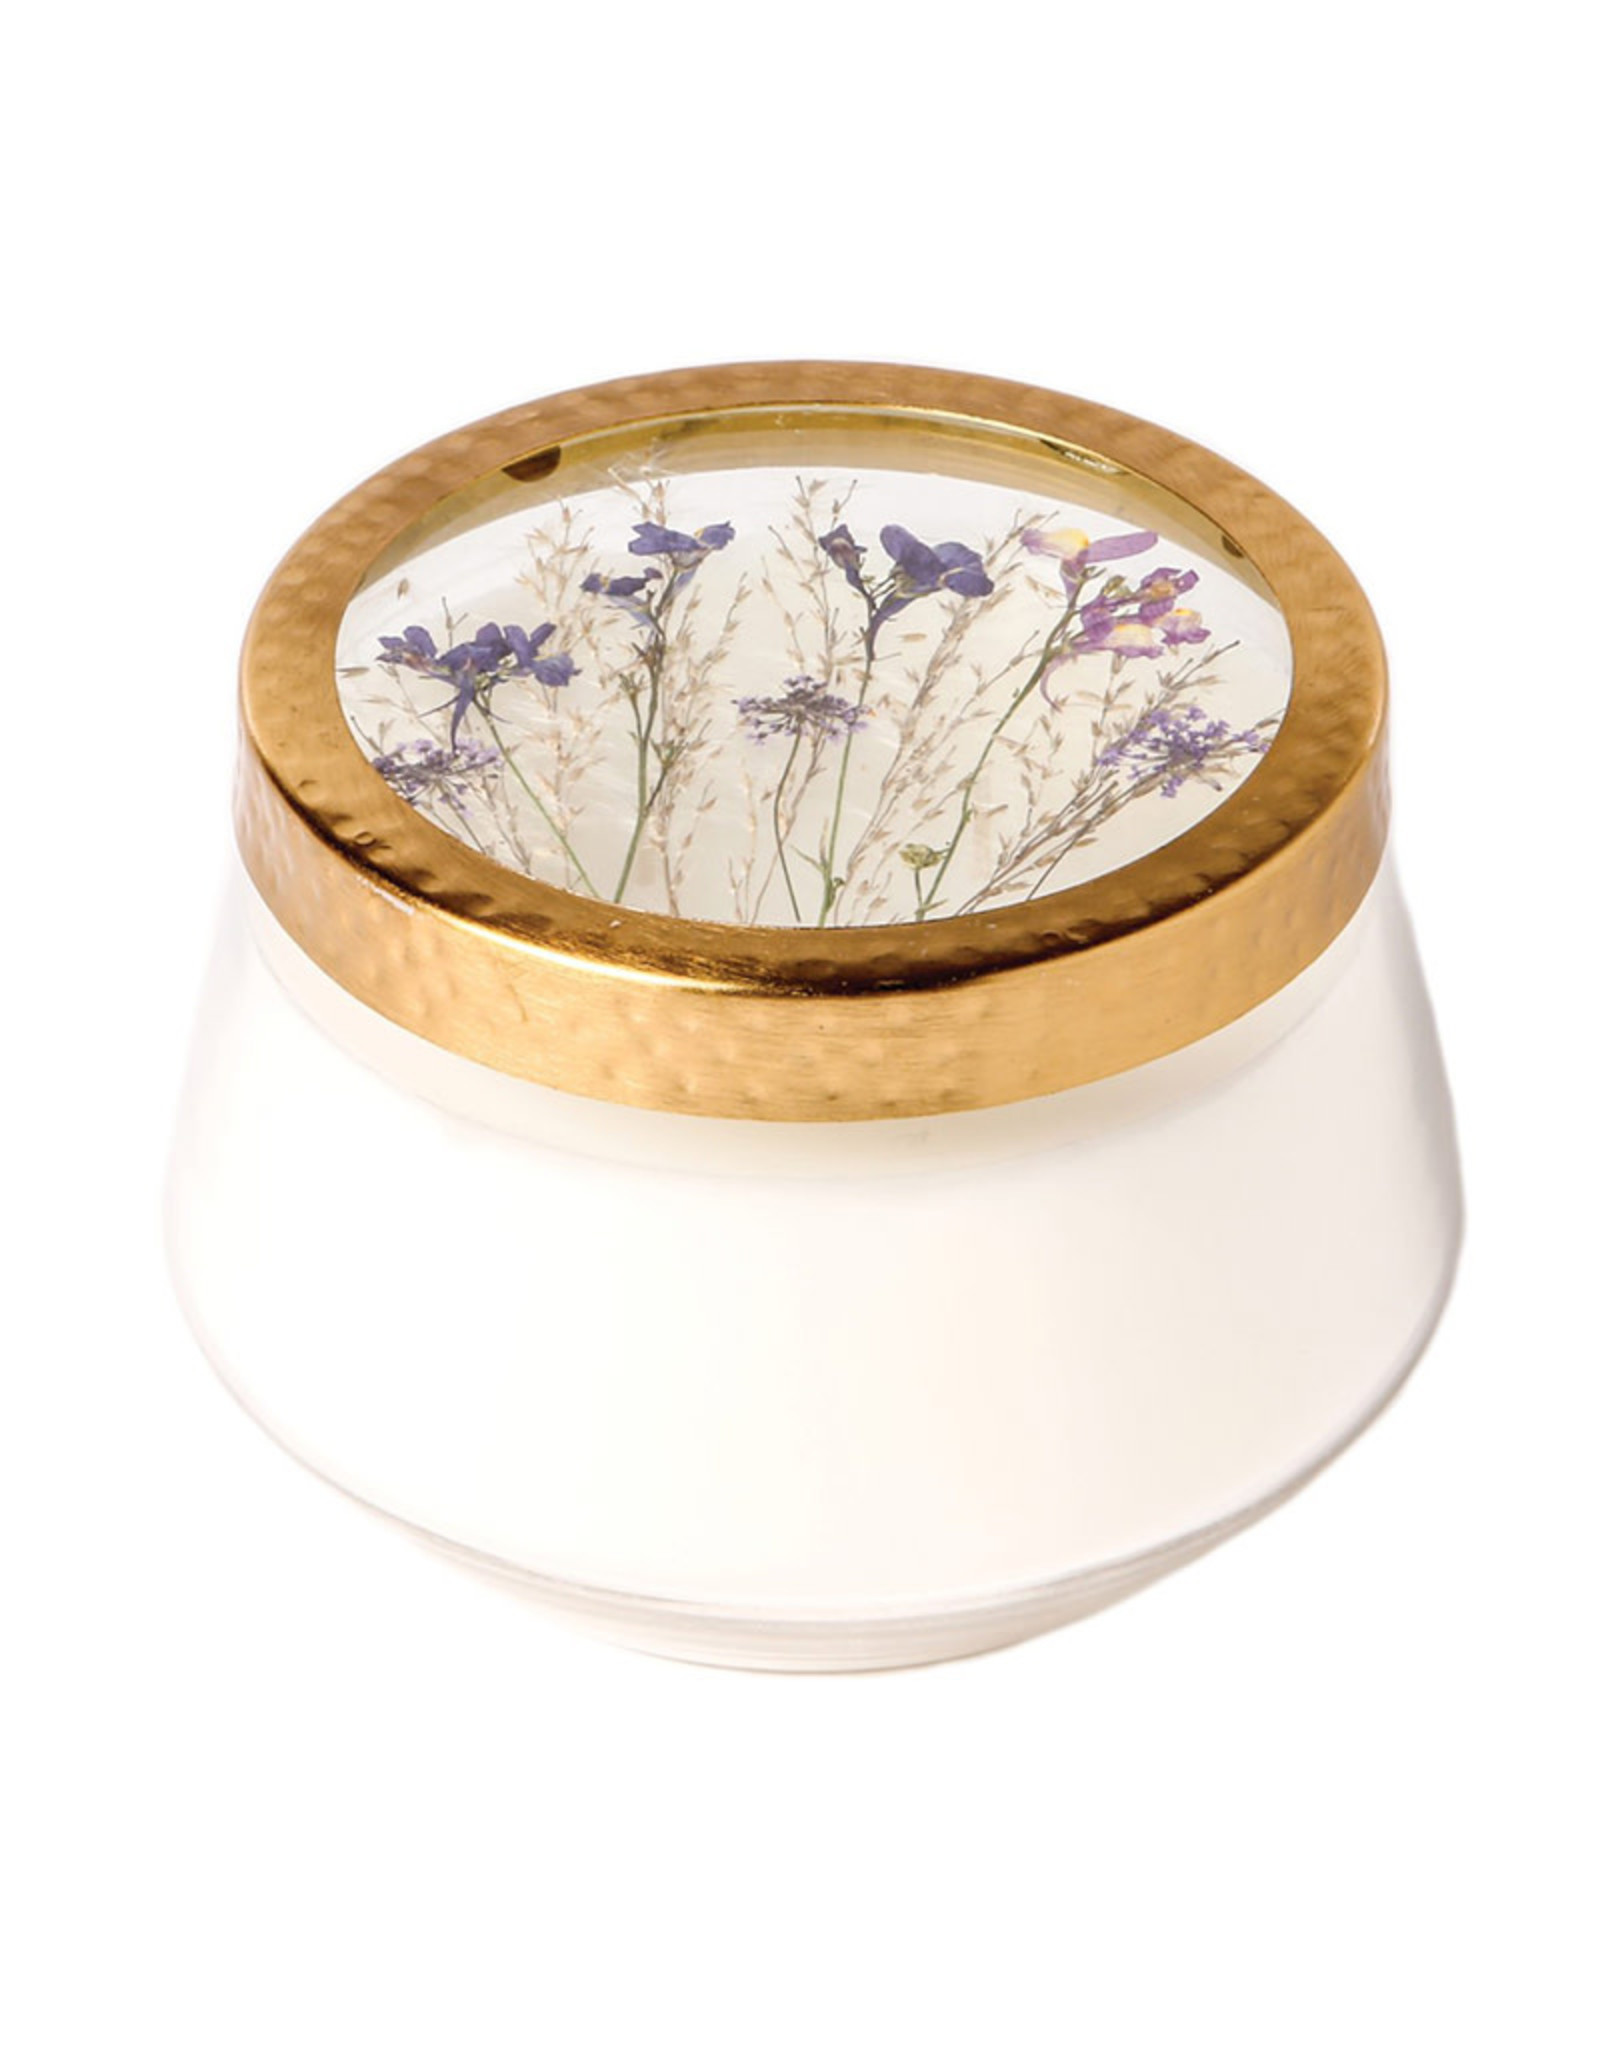 ROSY RINGS ROMAN LAVENDER LARGE PRESSED FLOWER CANDLE